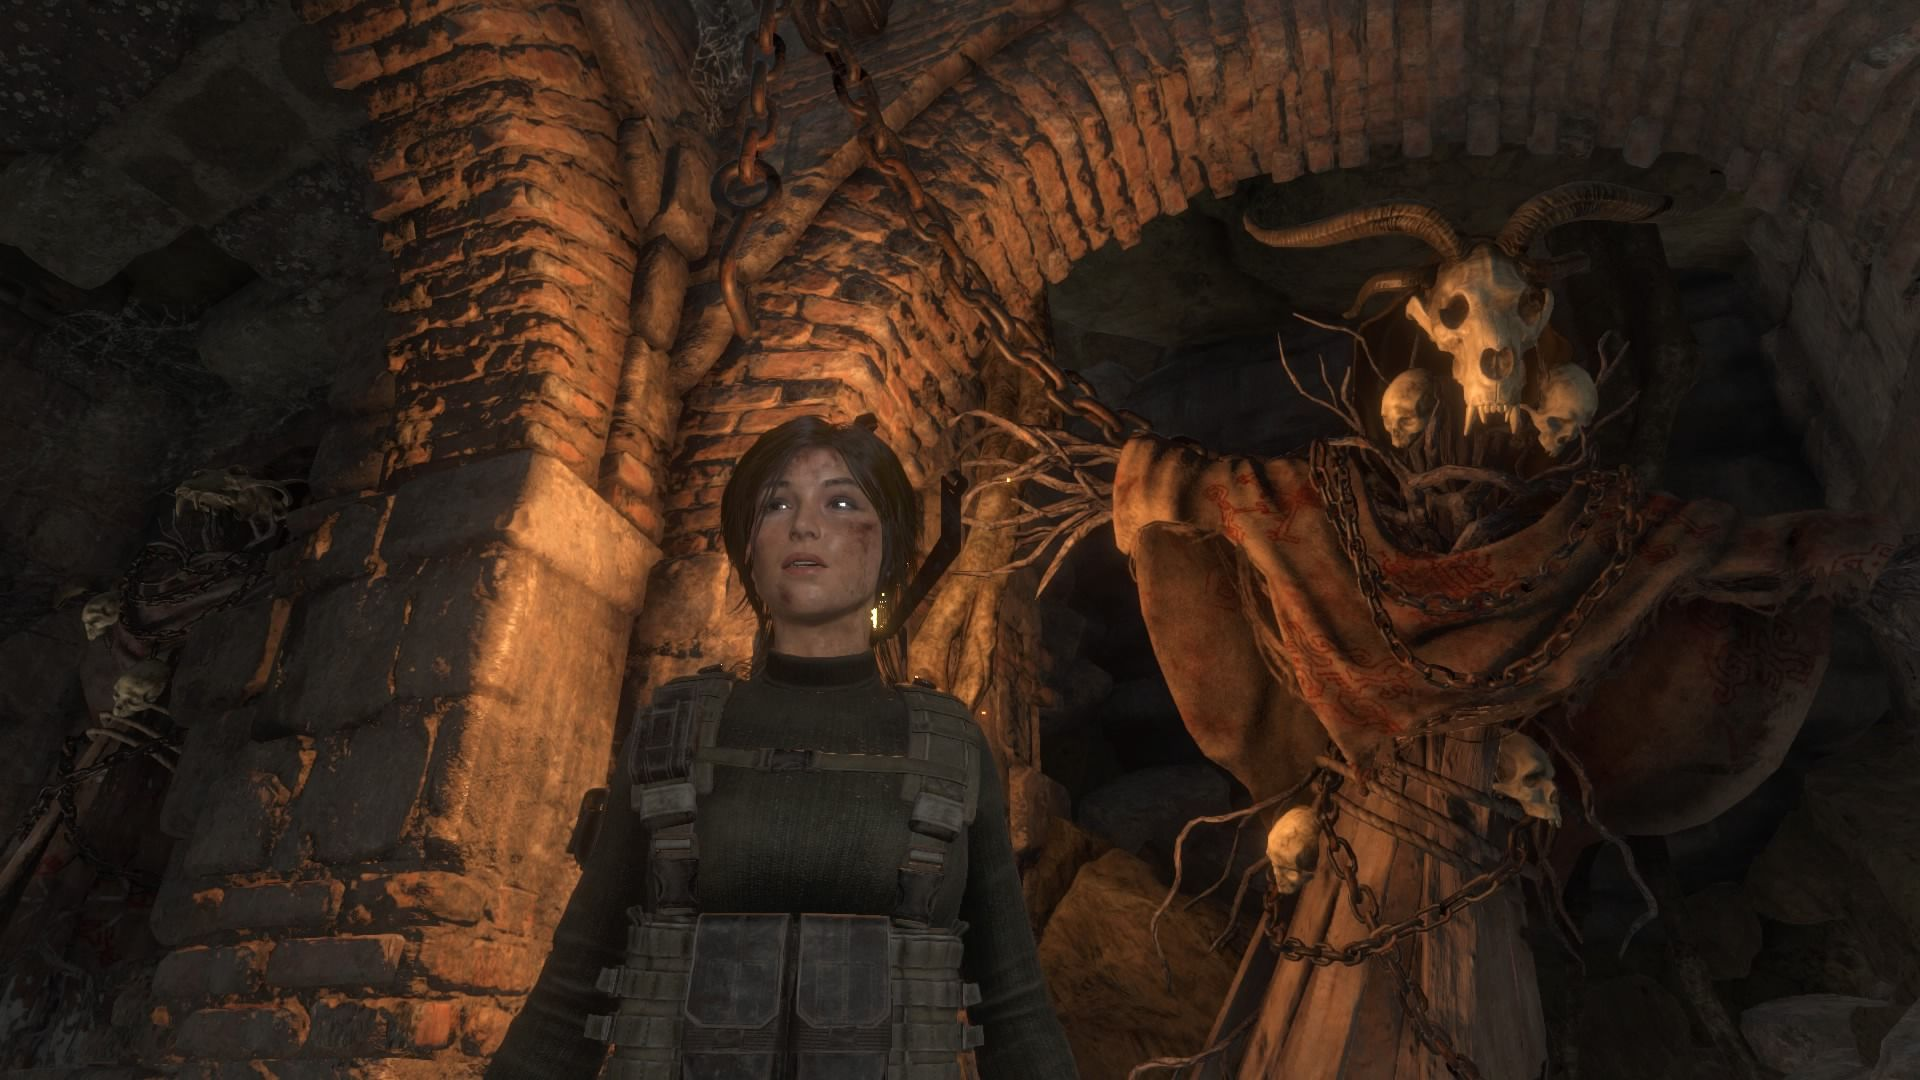 Hunting the witch, lara croft, ps4, rise of the tomb